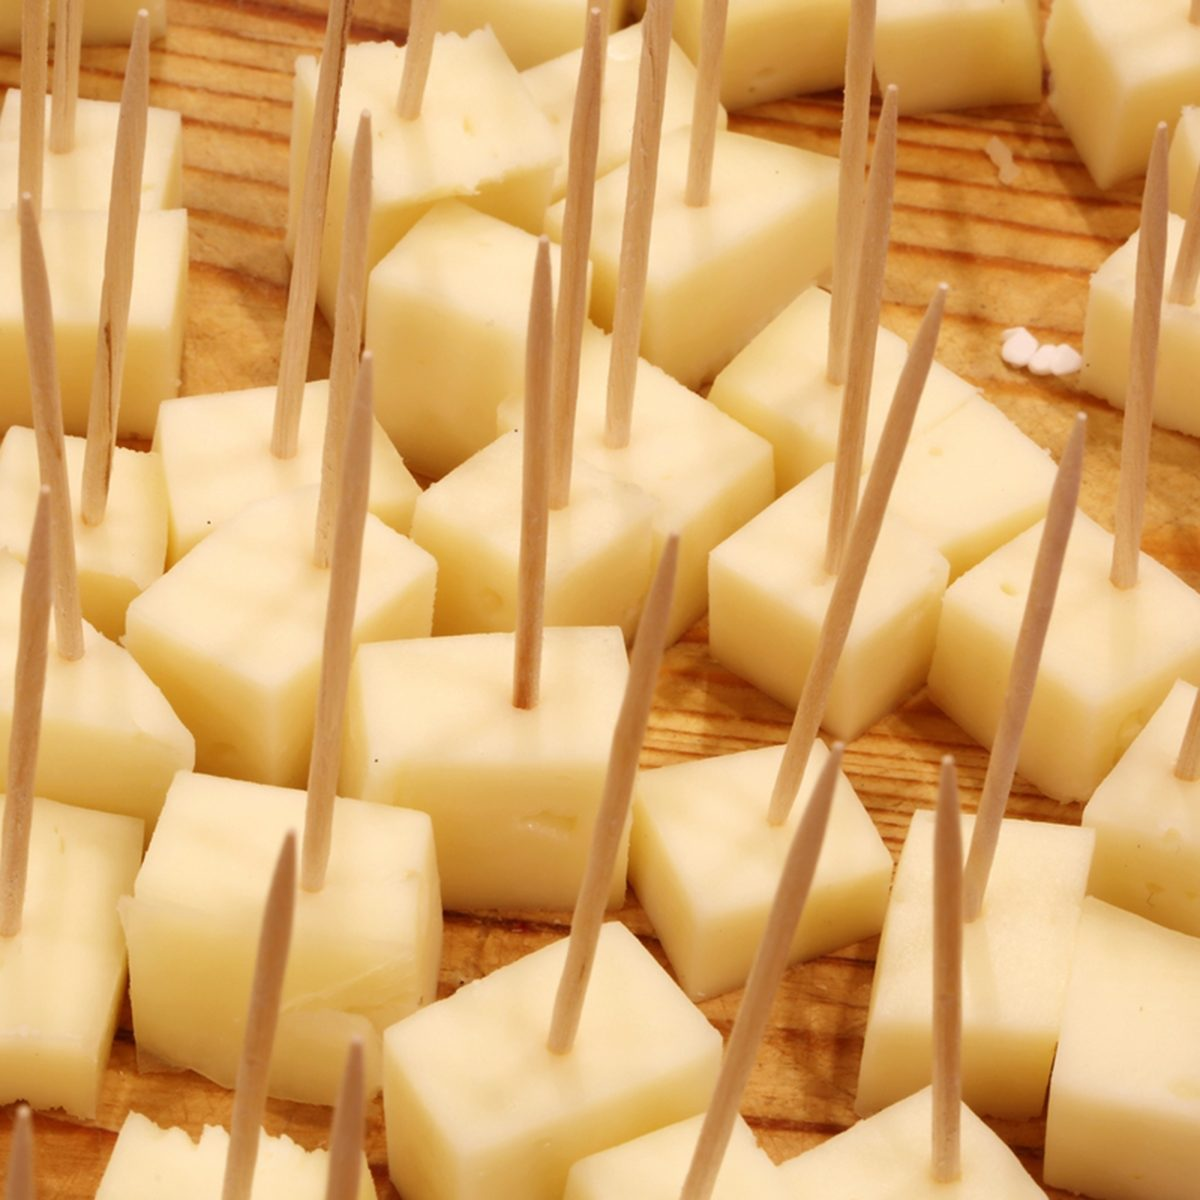 fresh cheese tastings with toothpicks in the cheese shop over the cutting board